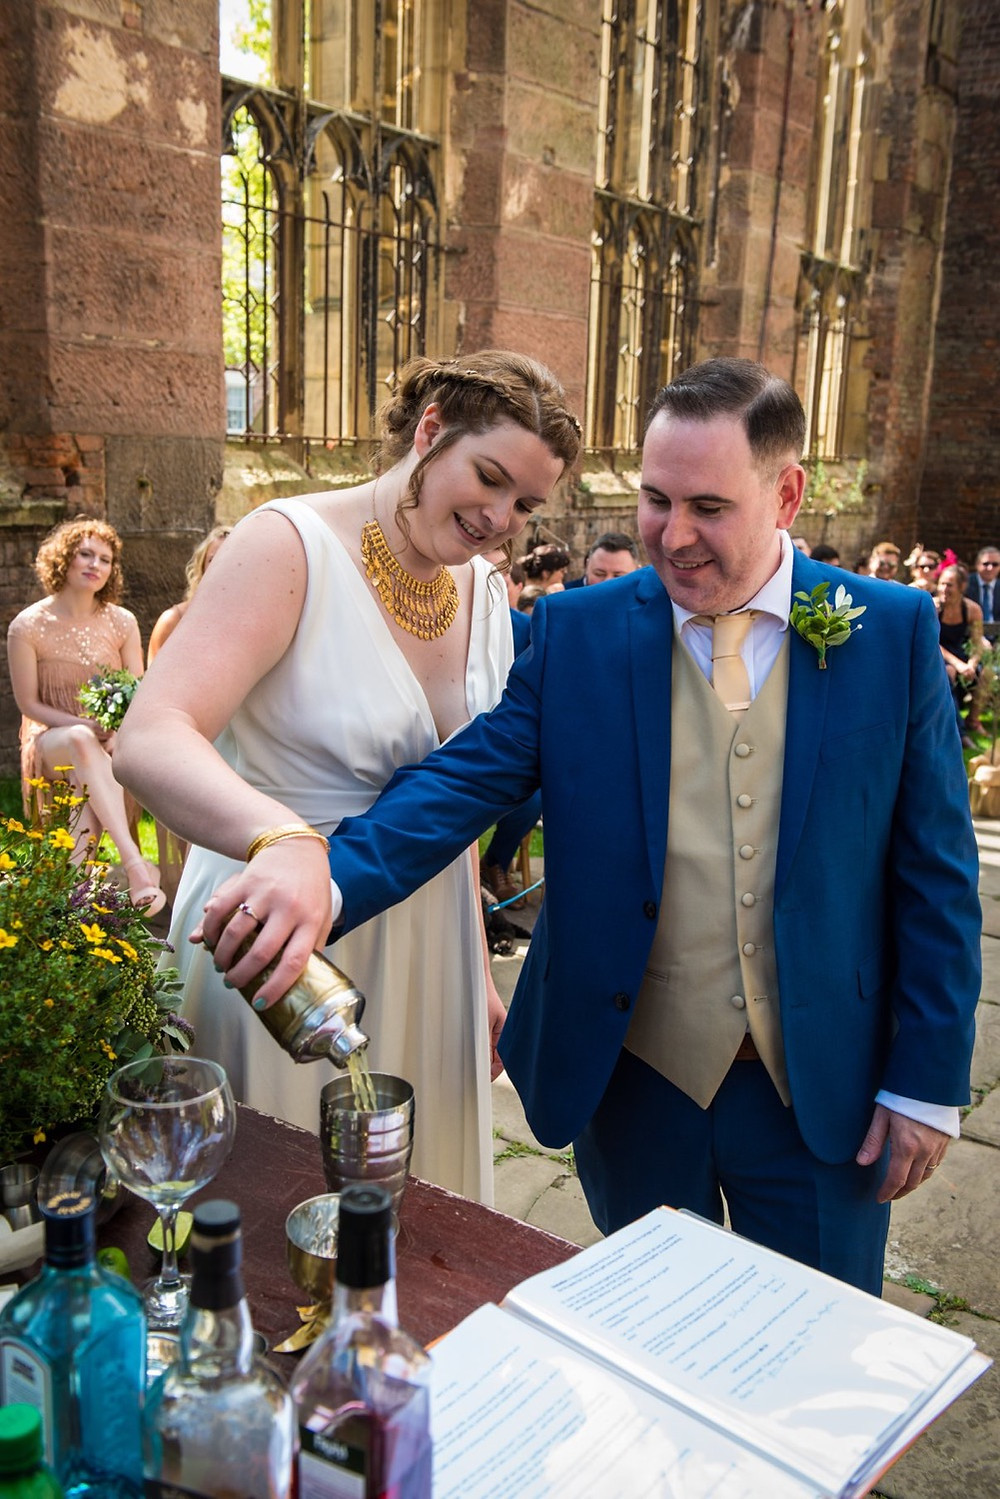 Liverpool wedding celebrant